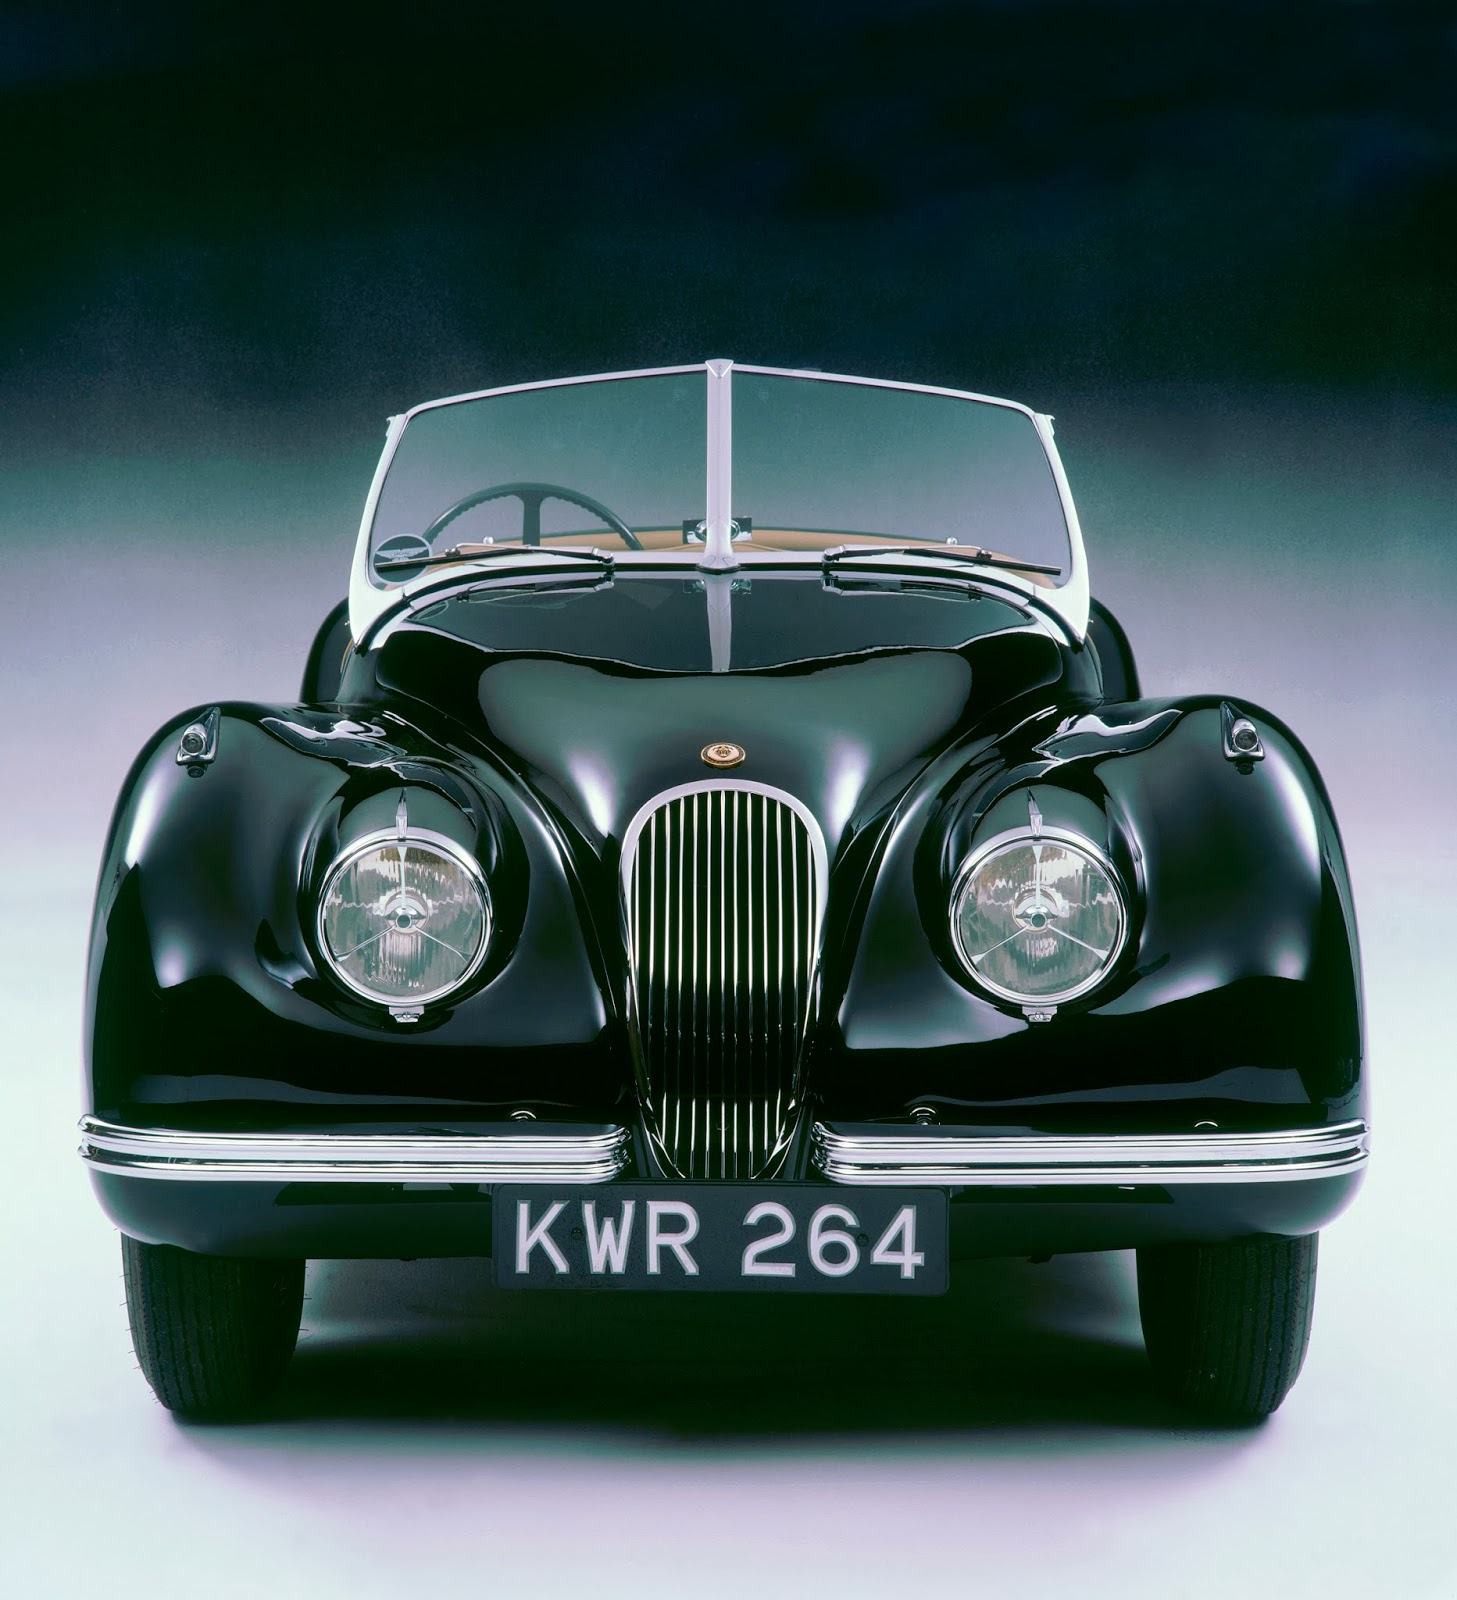 1954 Jaguar Xk140: Vintage Tyres: What Tyre Should I Fit To My Jaguar XK